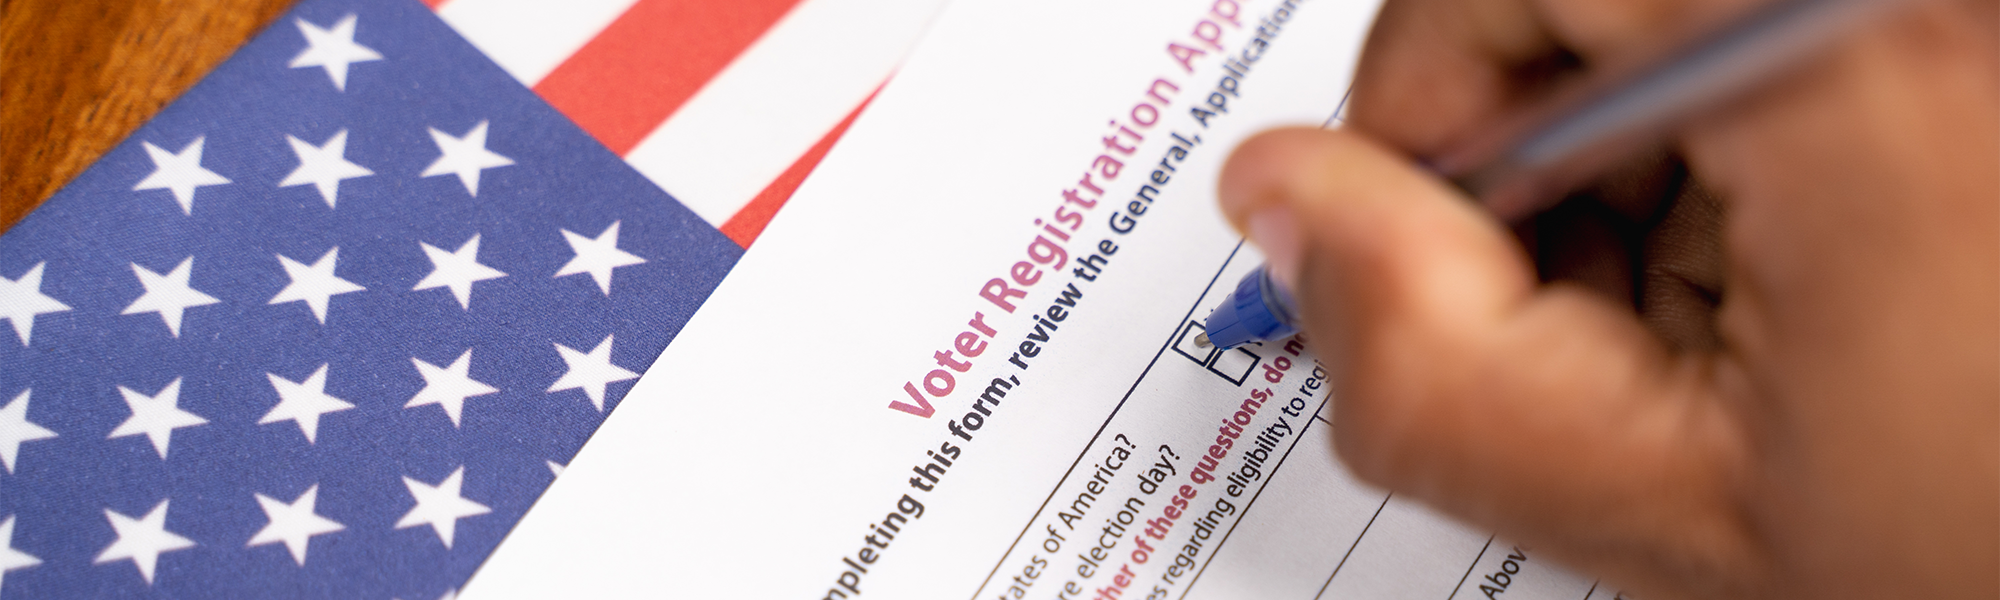 a hand filling out a voter registration form